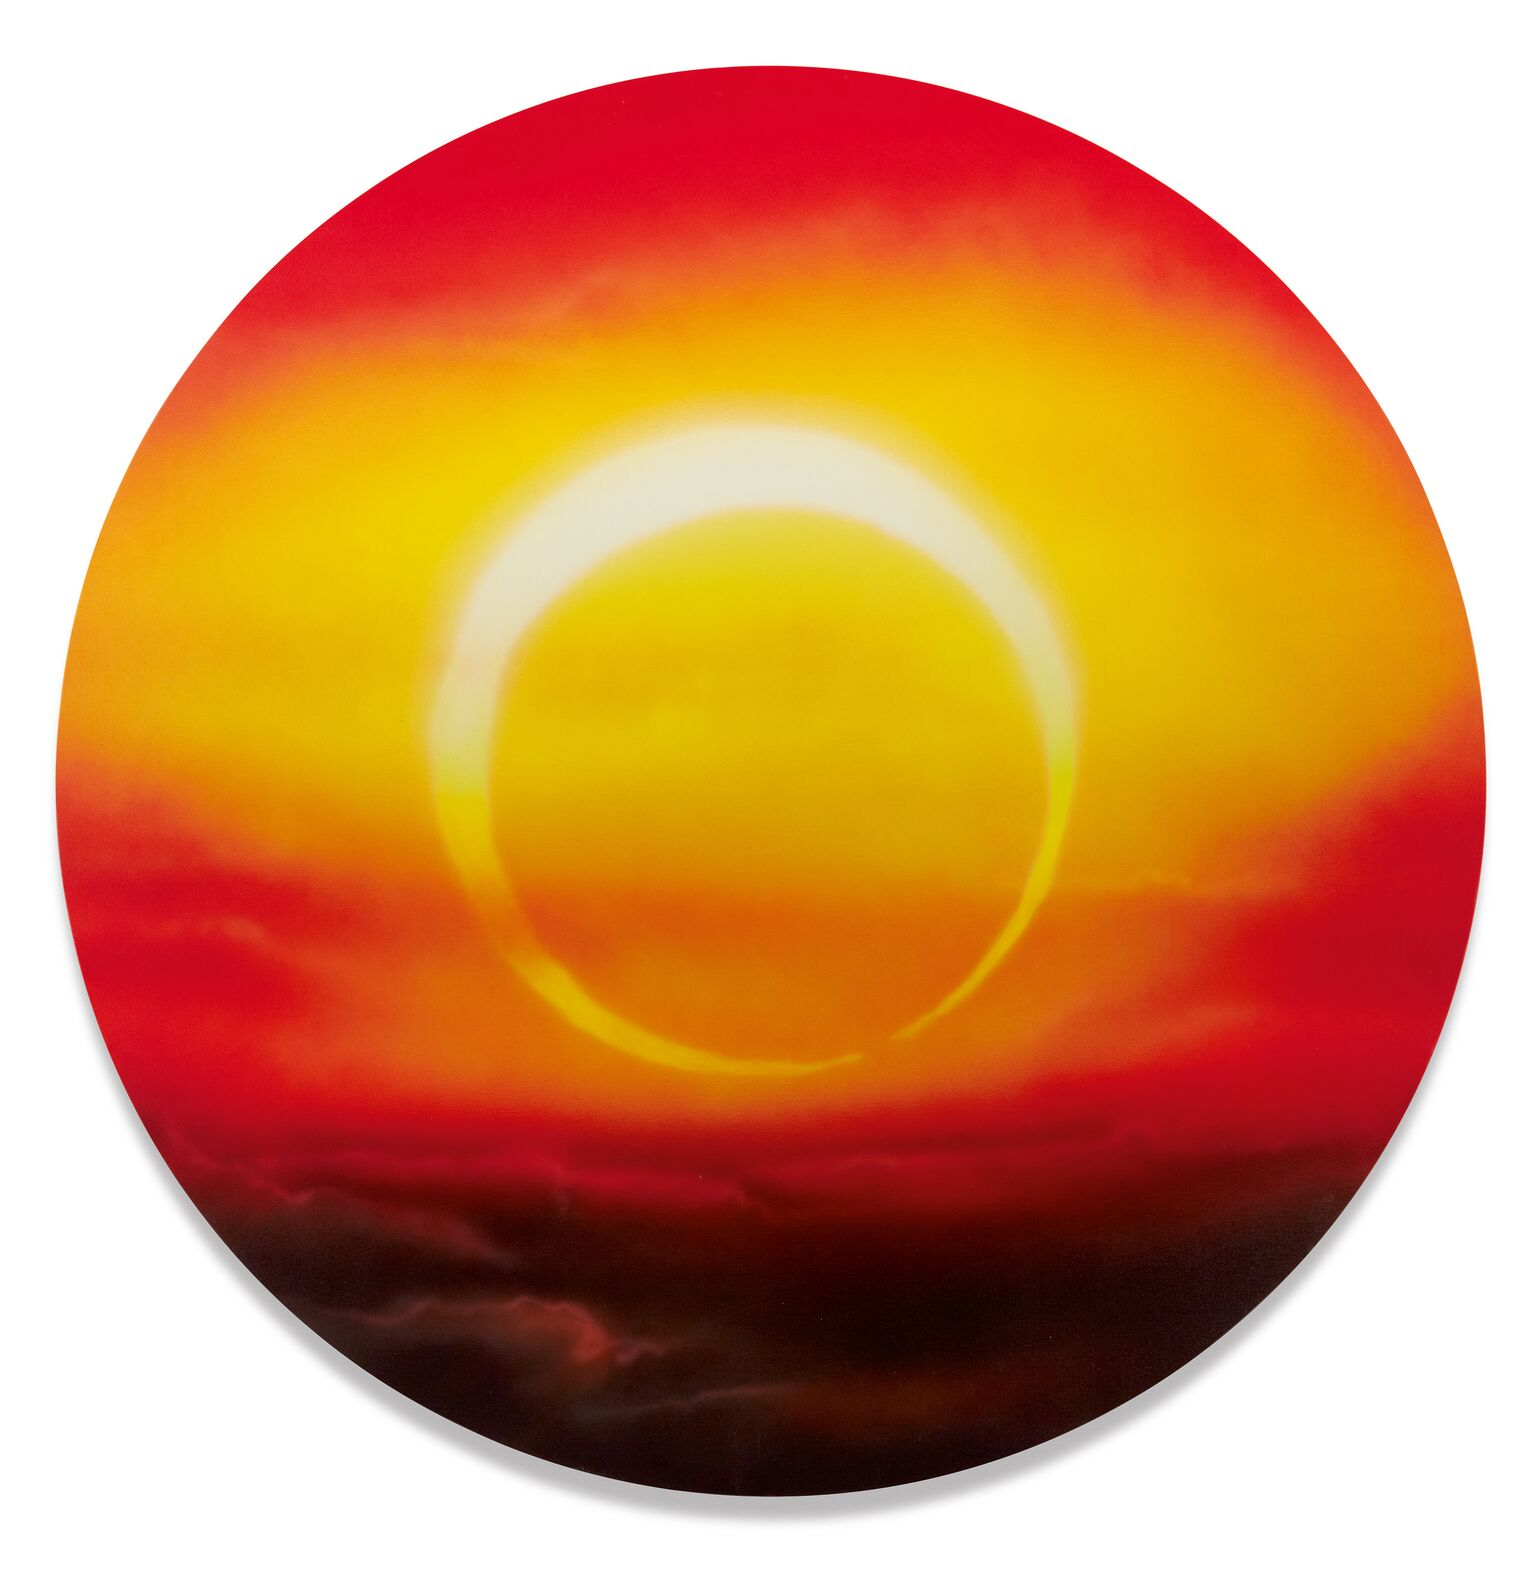 (RED) Eclipse on view at Miami, Art Basel picture